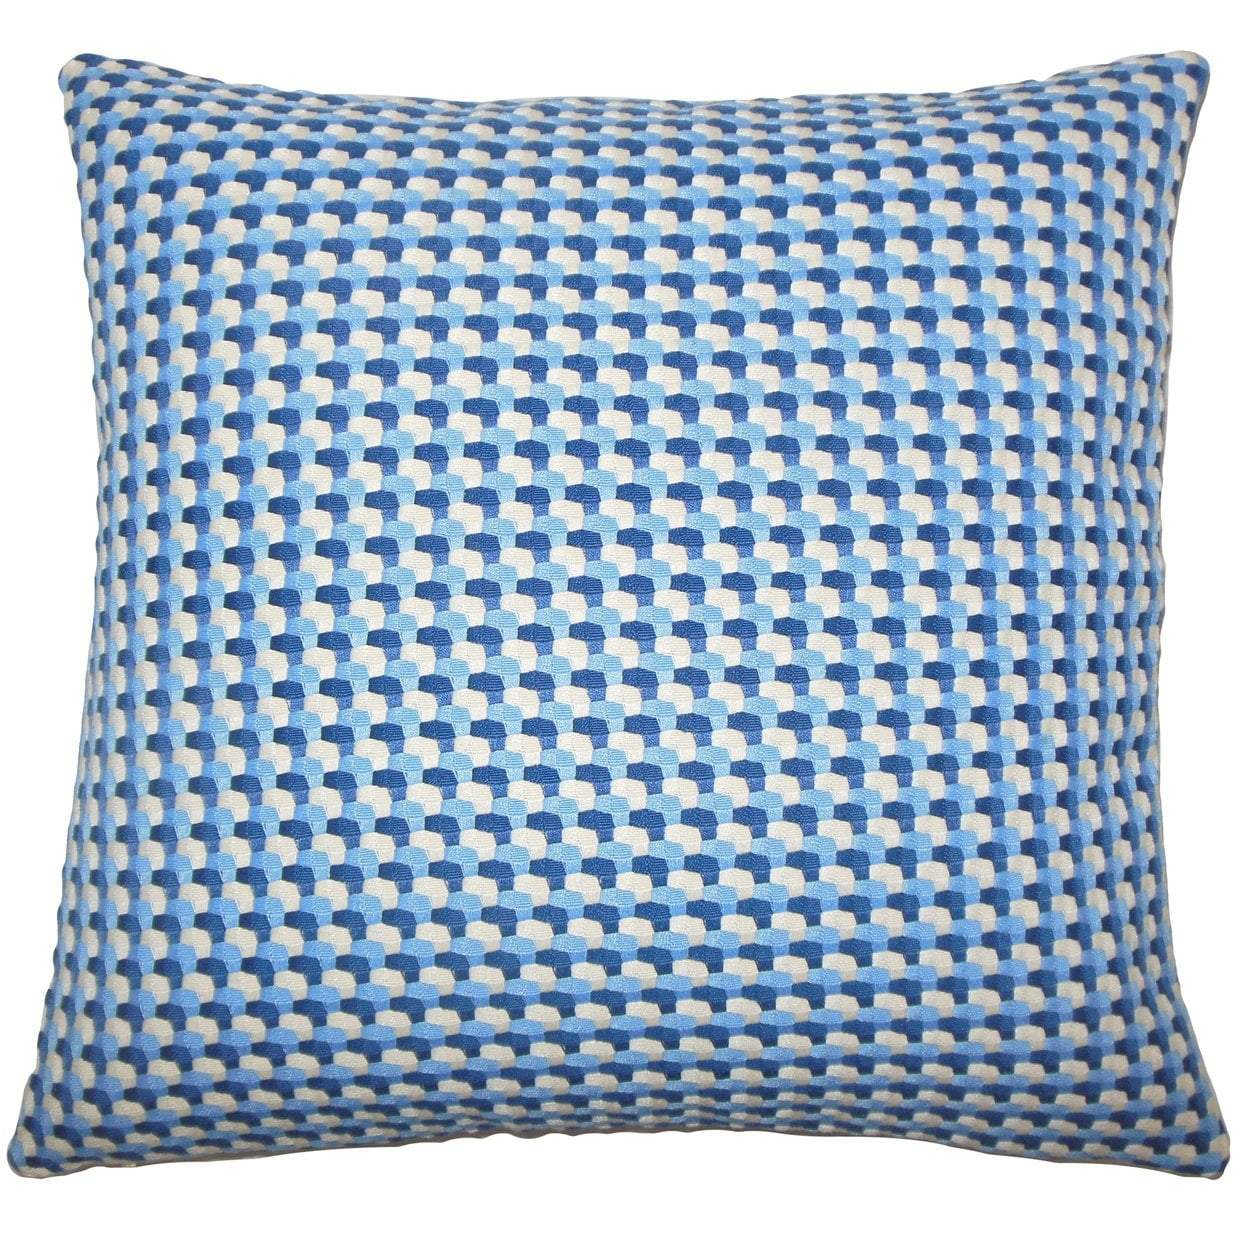 Cardwell Throw Pillow Cover